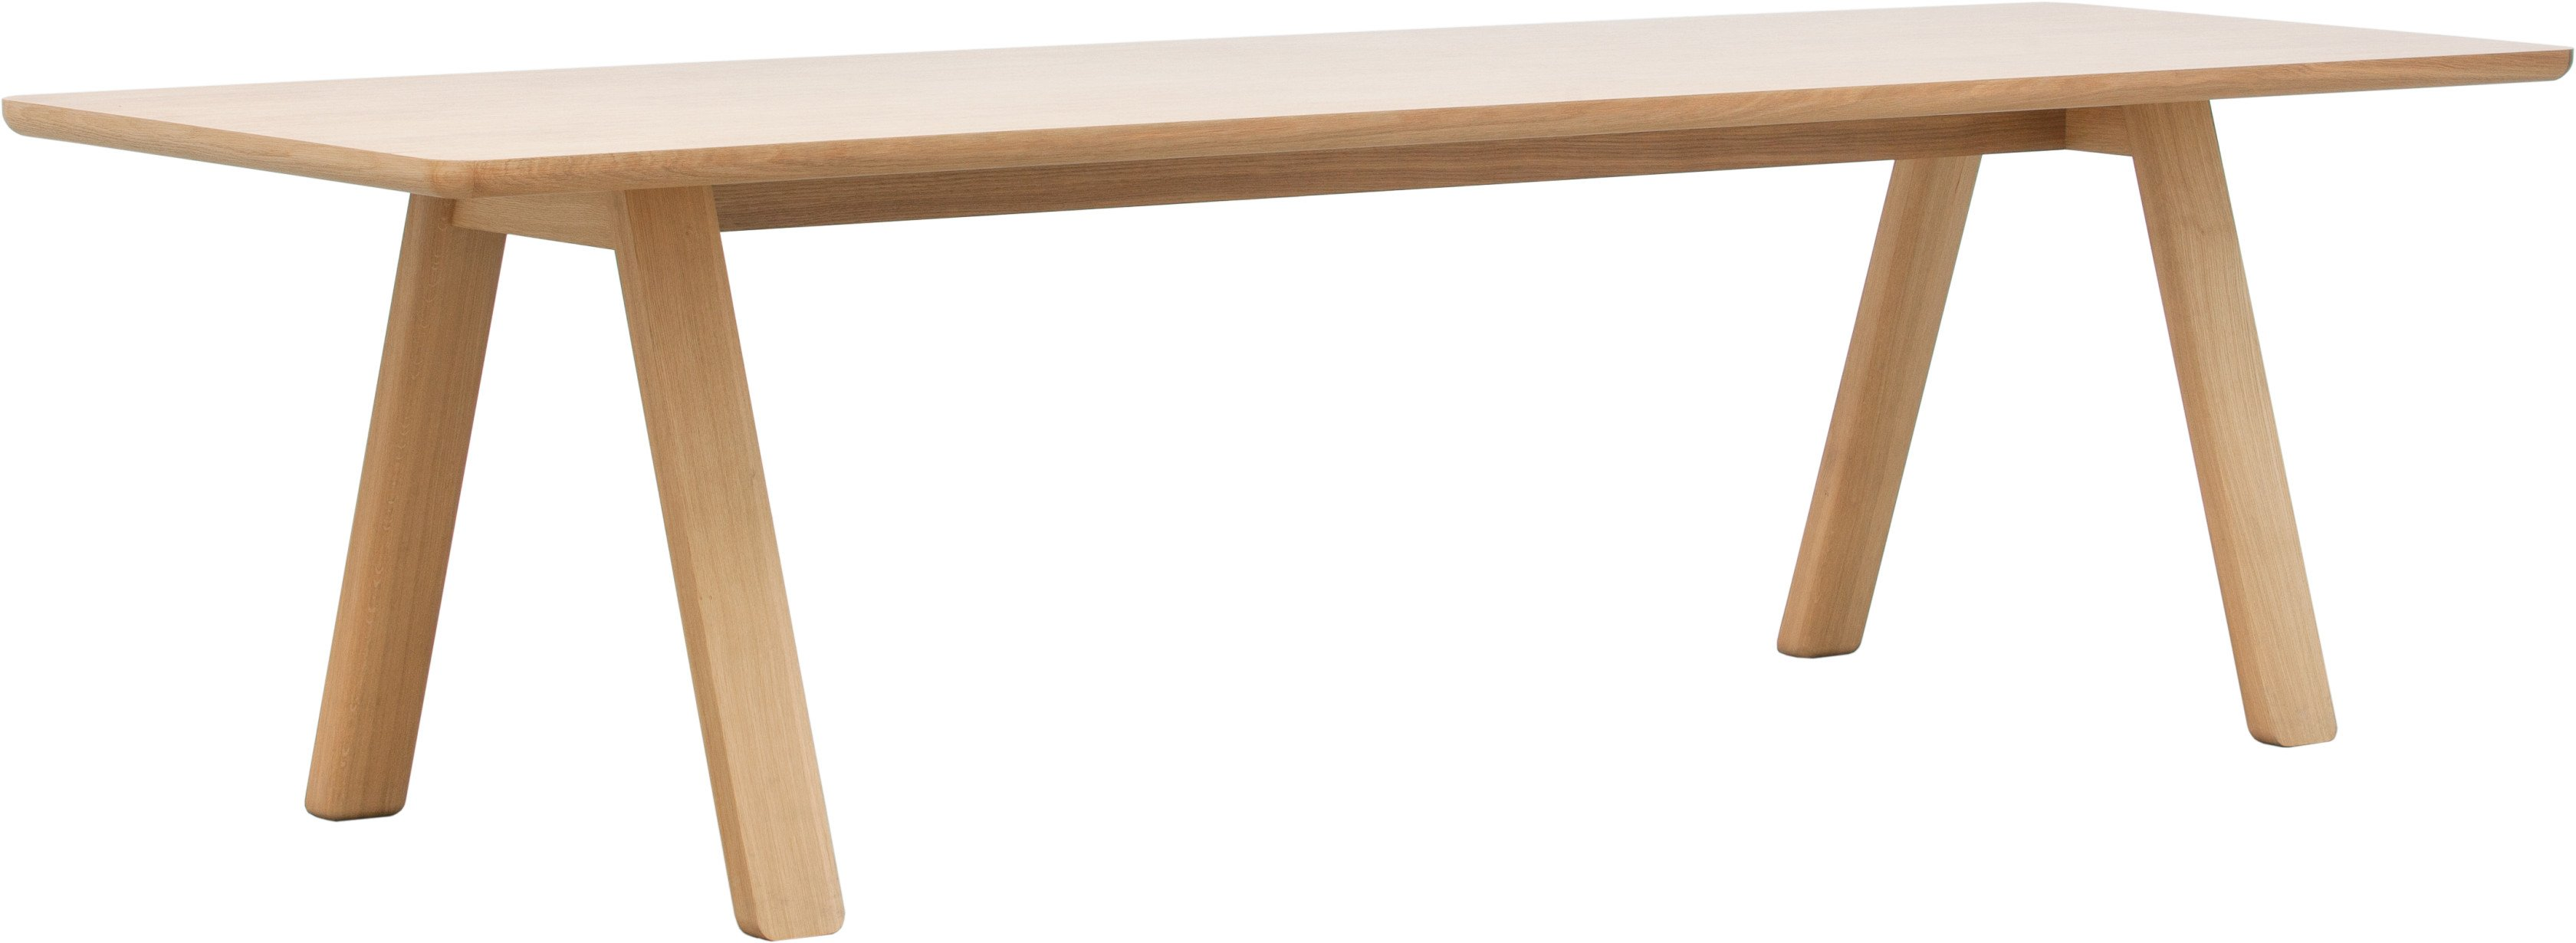 Stelvio Table 220x90 Oak by A. Gufler, TON